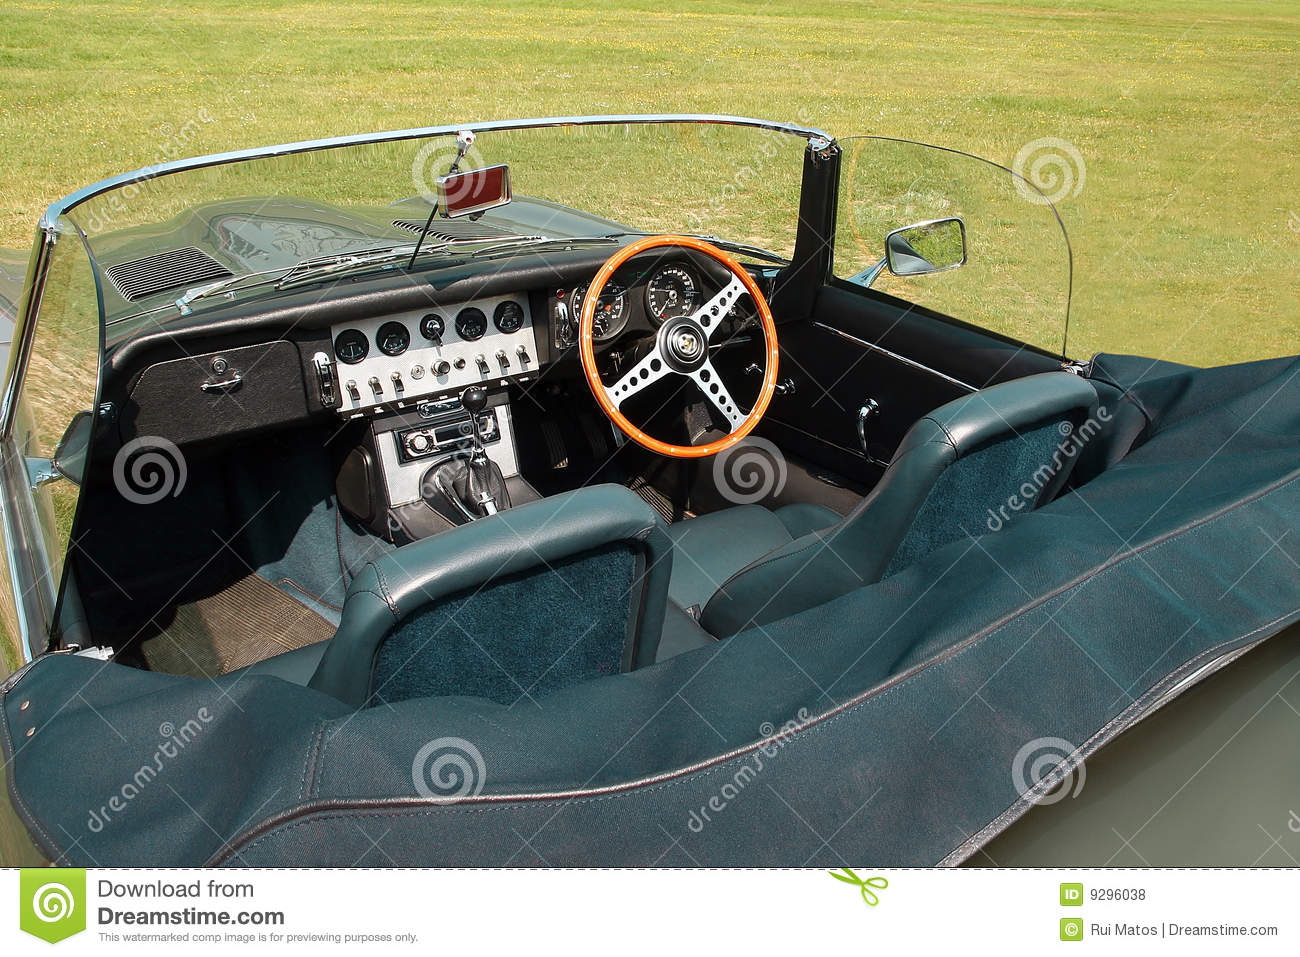 Closeup of a vintage convertible sports car interior parked in a lawn